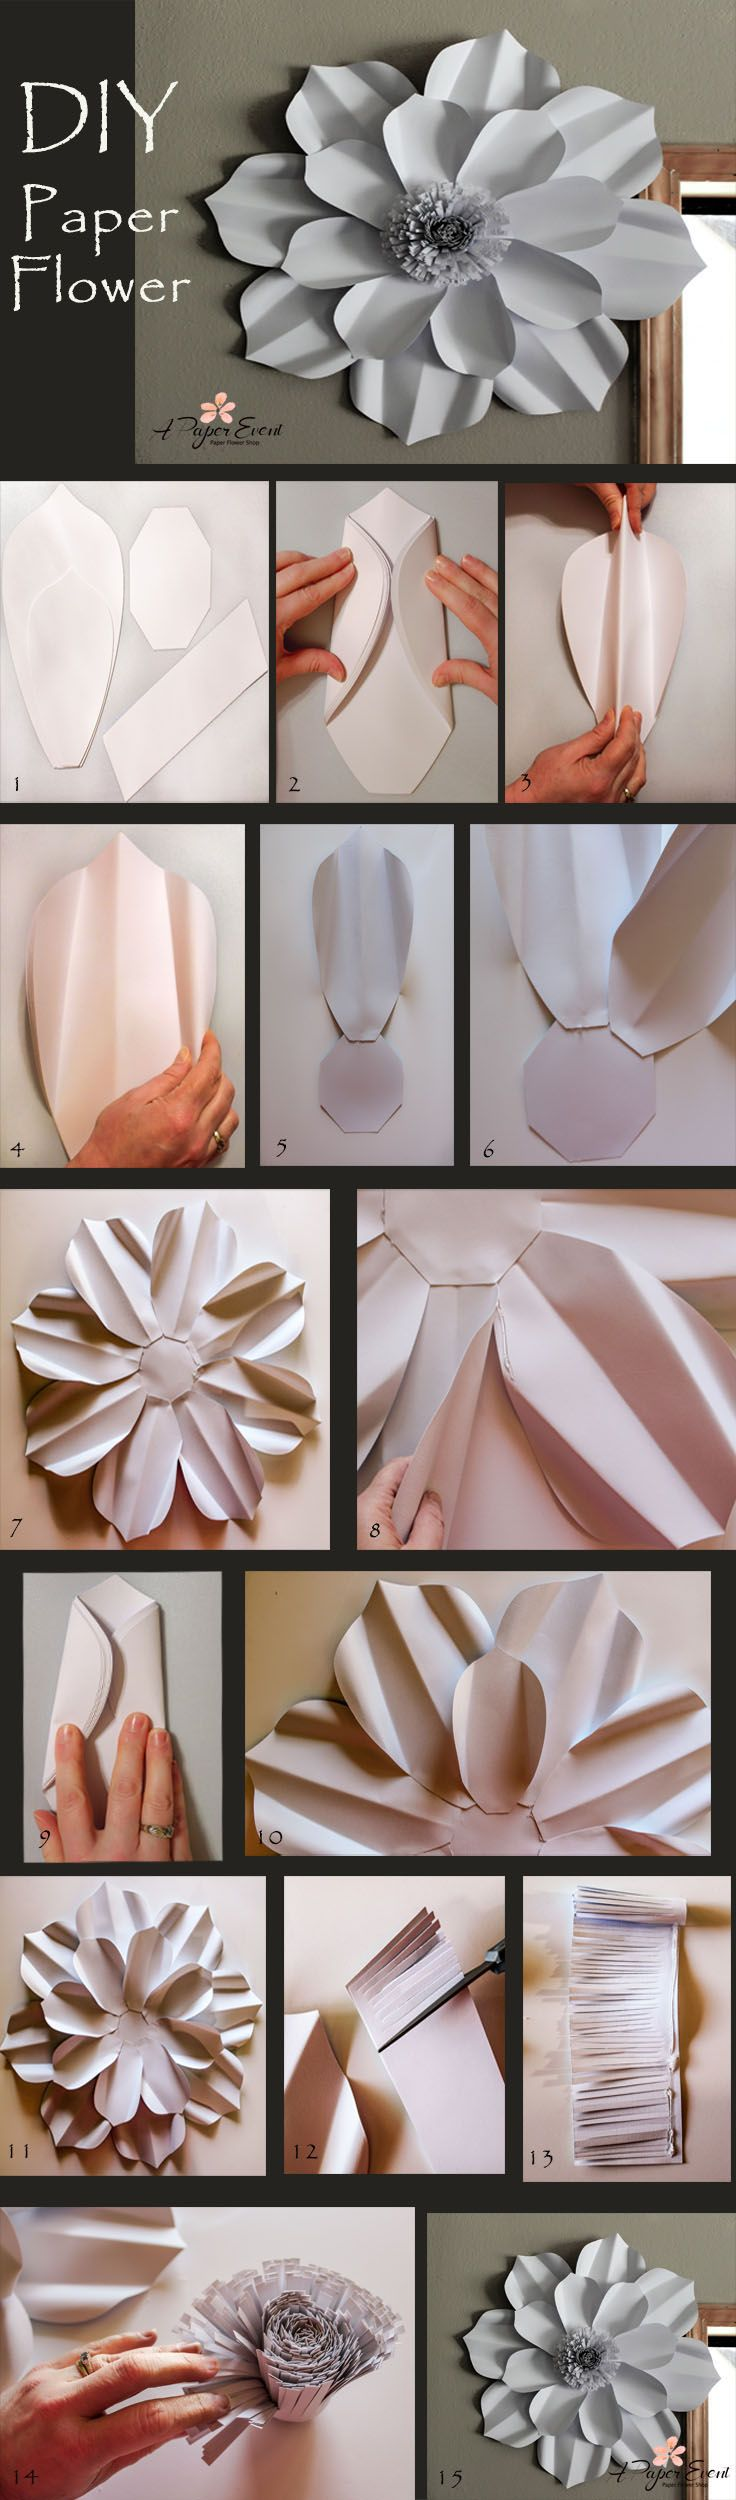 Make your own giant paper flower!  Create breathtaking backdrops for any event.  Template and step-by-step directions provided to make this over the top decor piece. Follow us on instagram @apaperevent